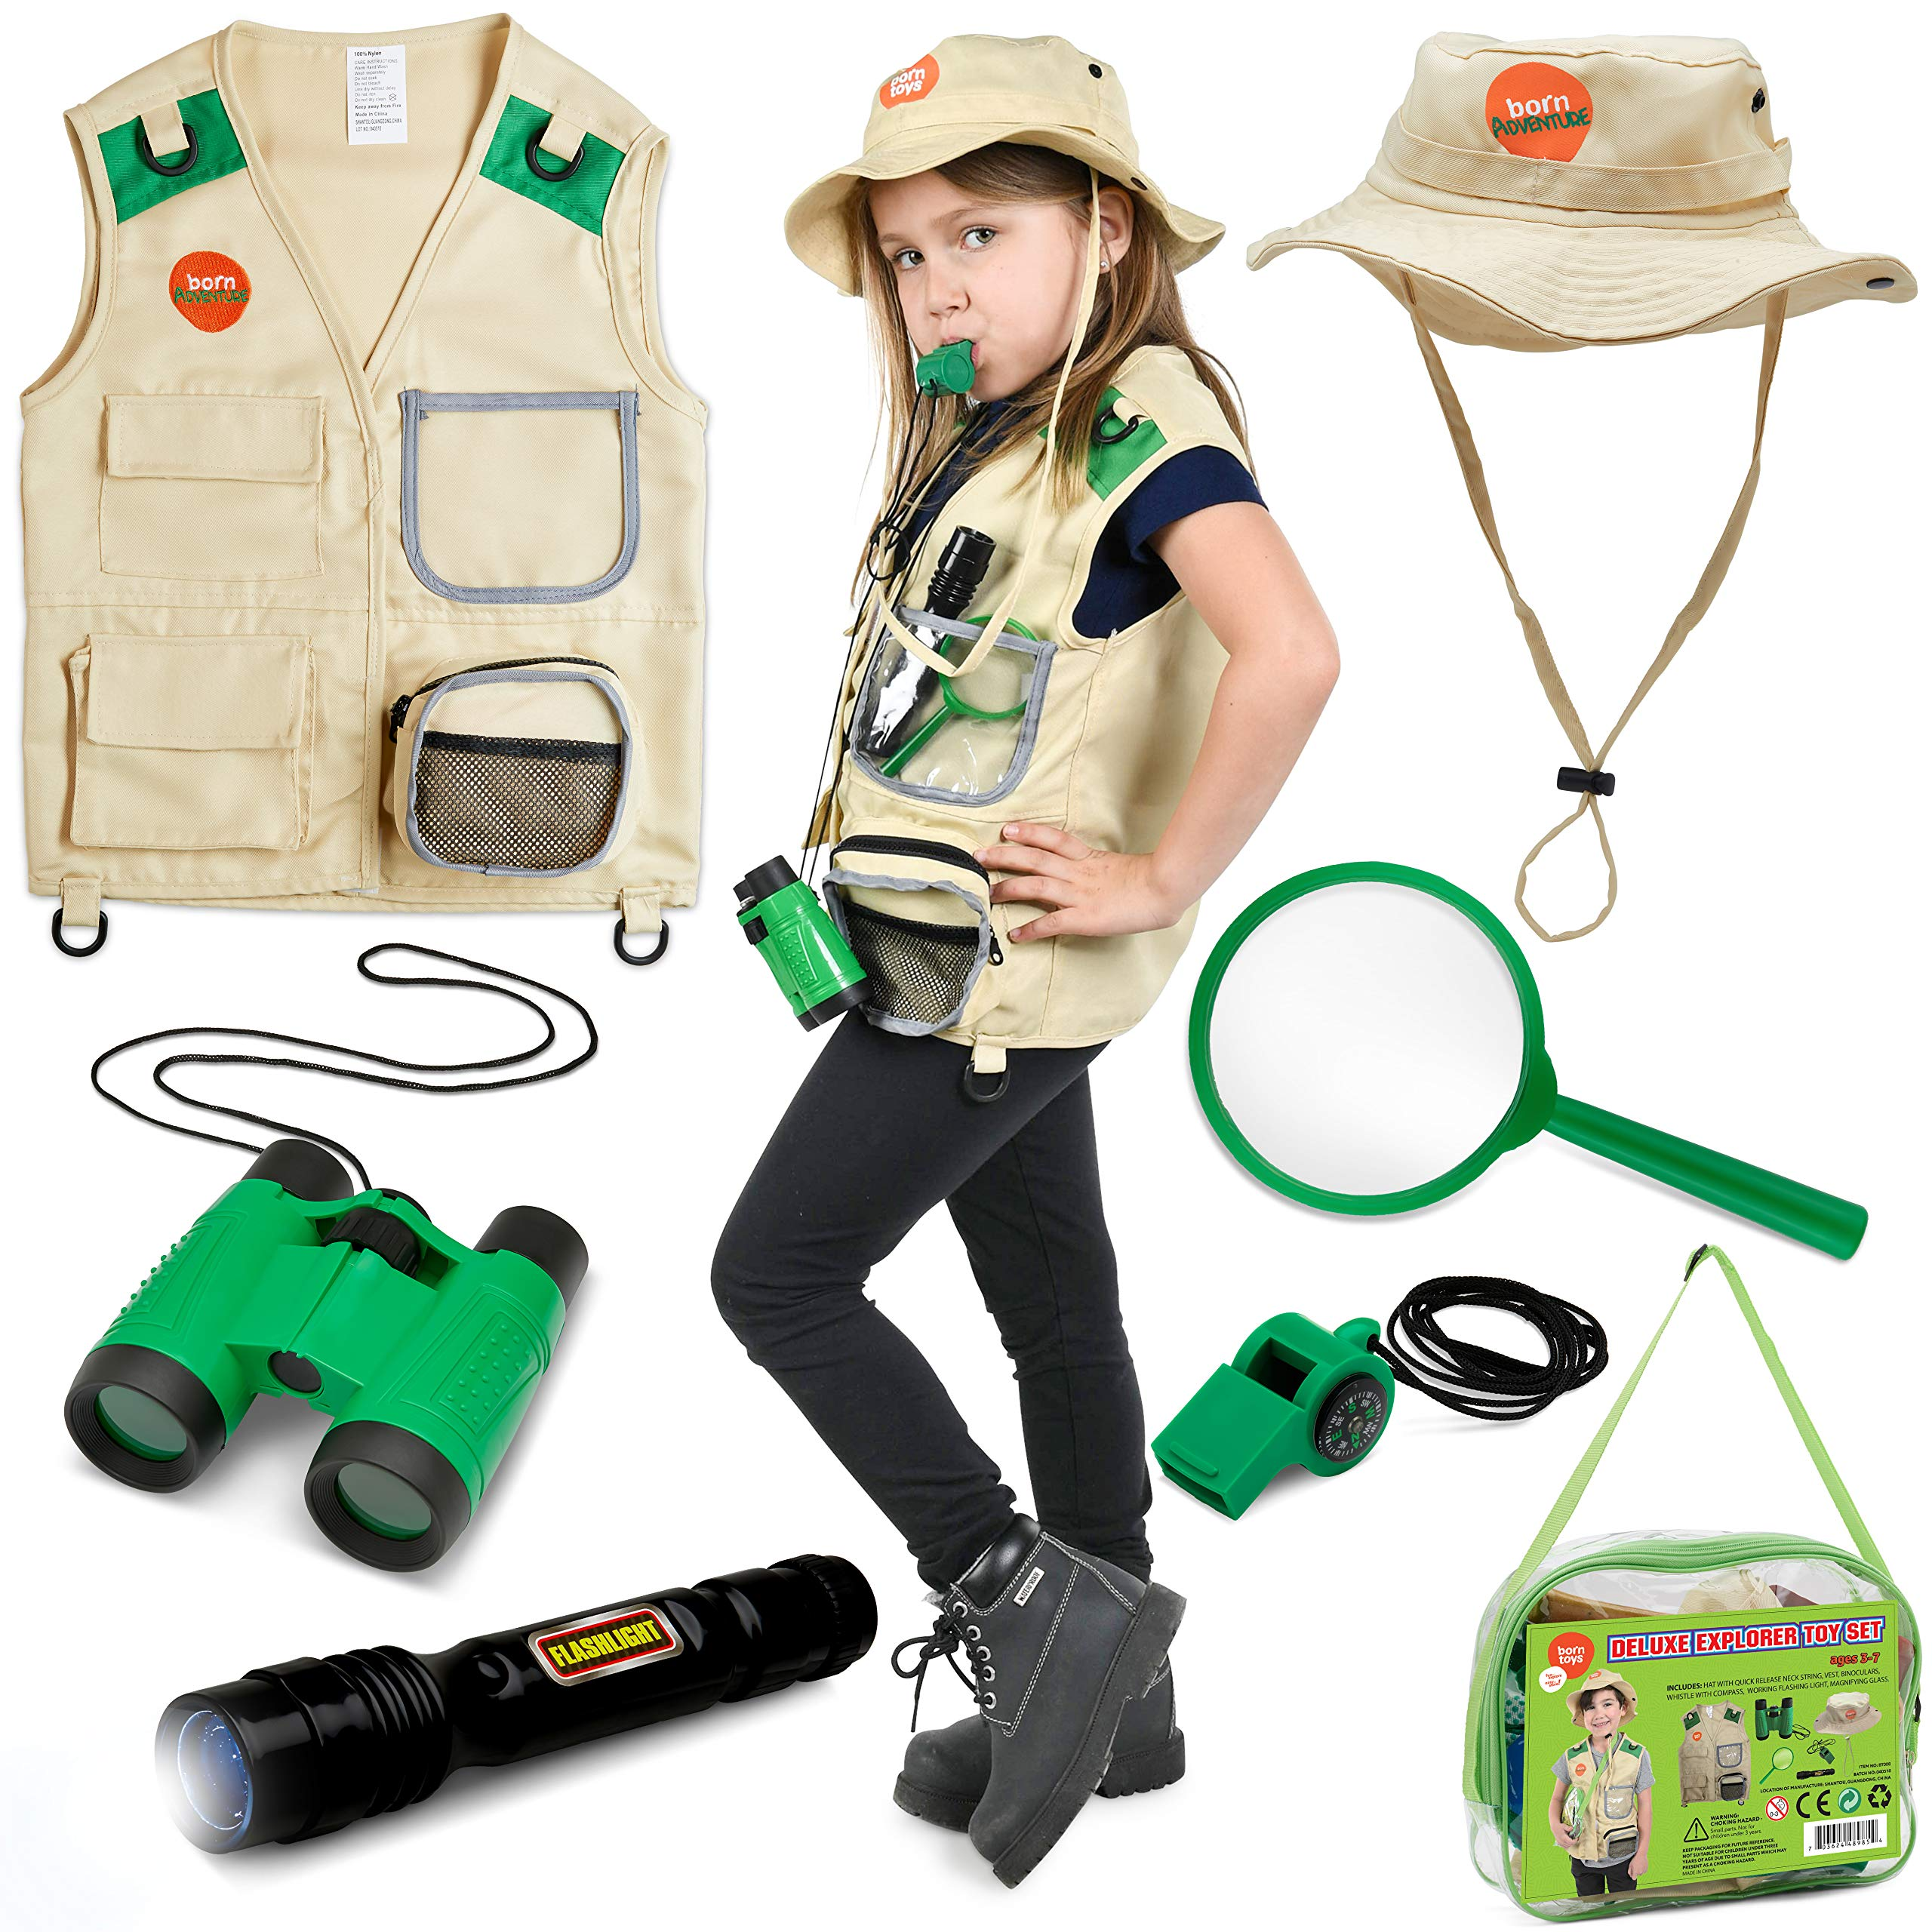 Born Toys Explorer Kit for Kids Children's Toy with Washable Premium Backyard Safari Vest and Adventure kit or Paleontologist Costume